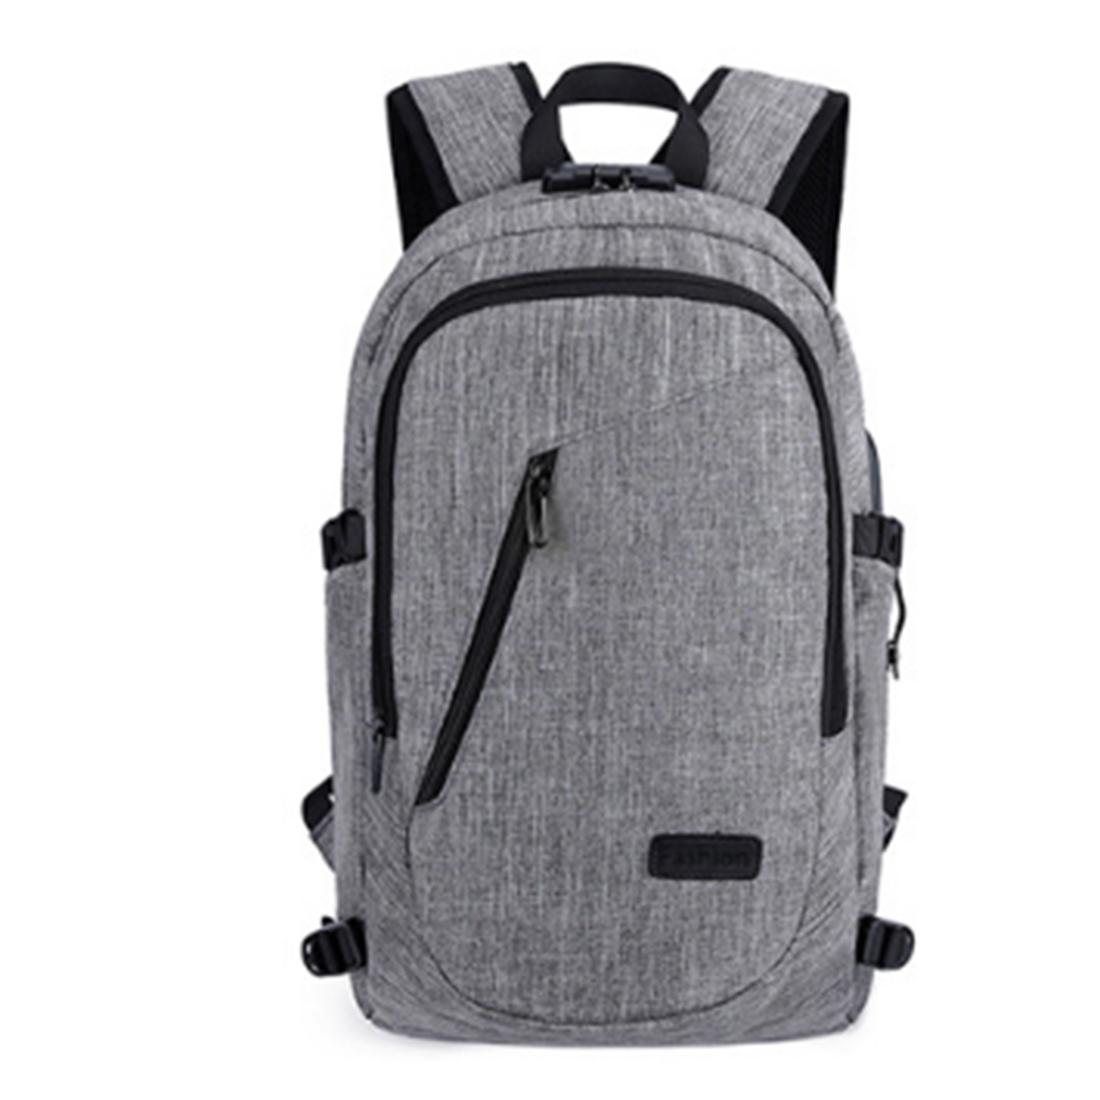 Male Oxford Cloth Backpack Big Capacity Outdoor Travel Business Bag with USB Charging Port - Grey